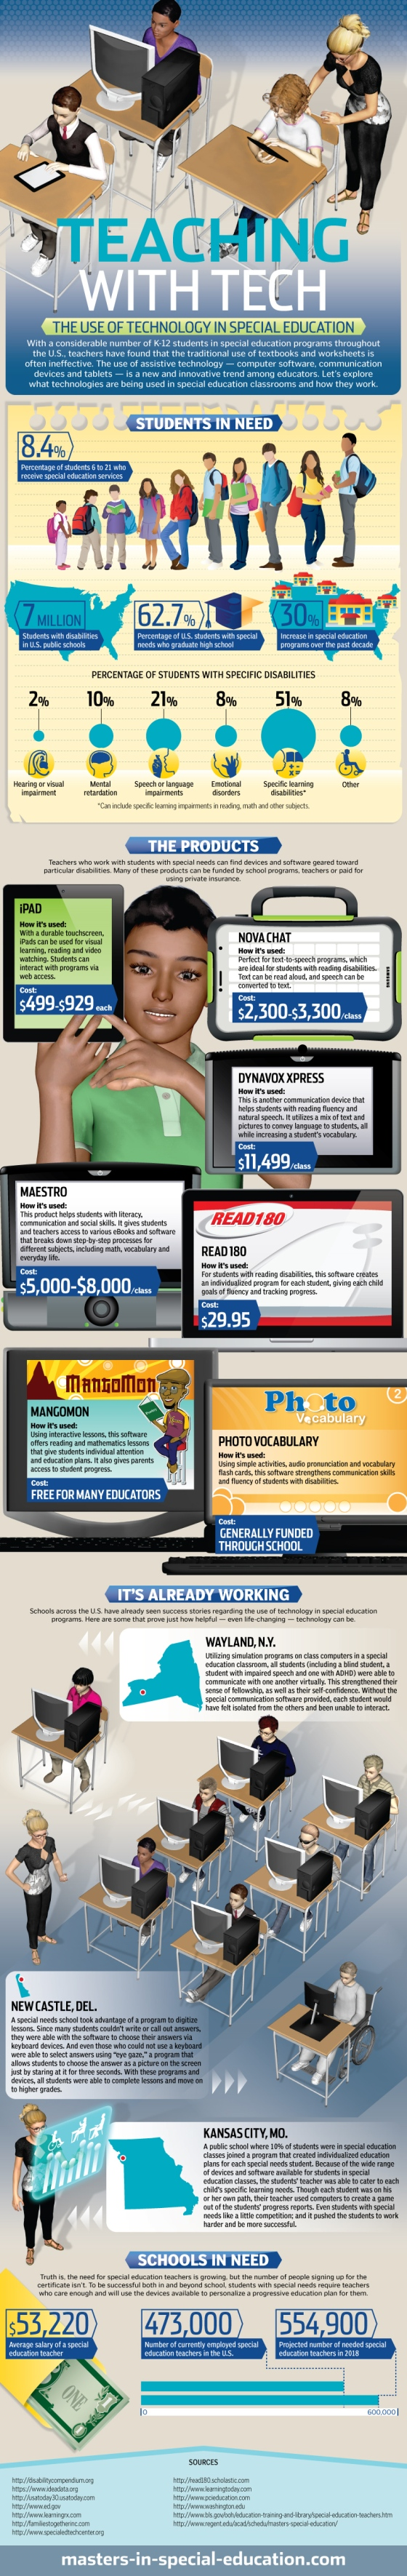 Infographic : Teaching with Tech